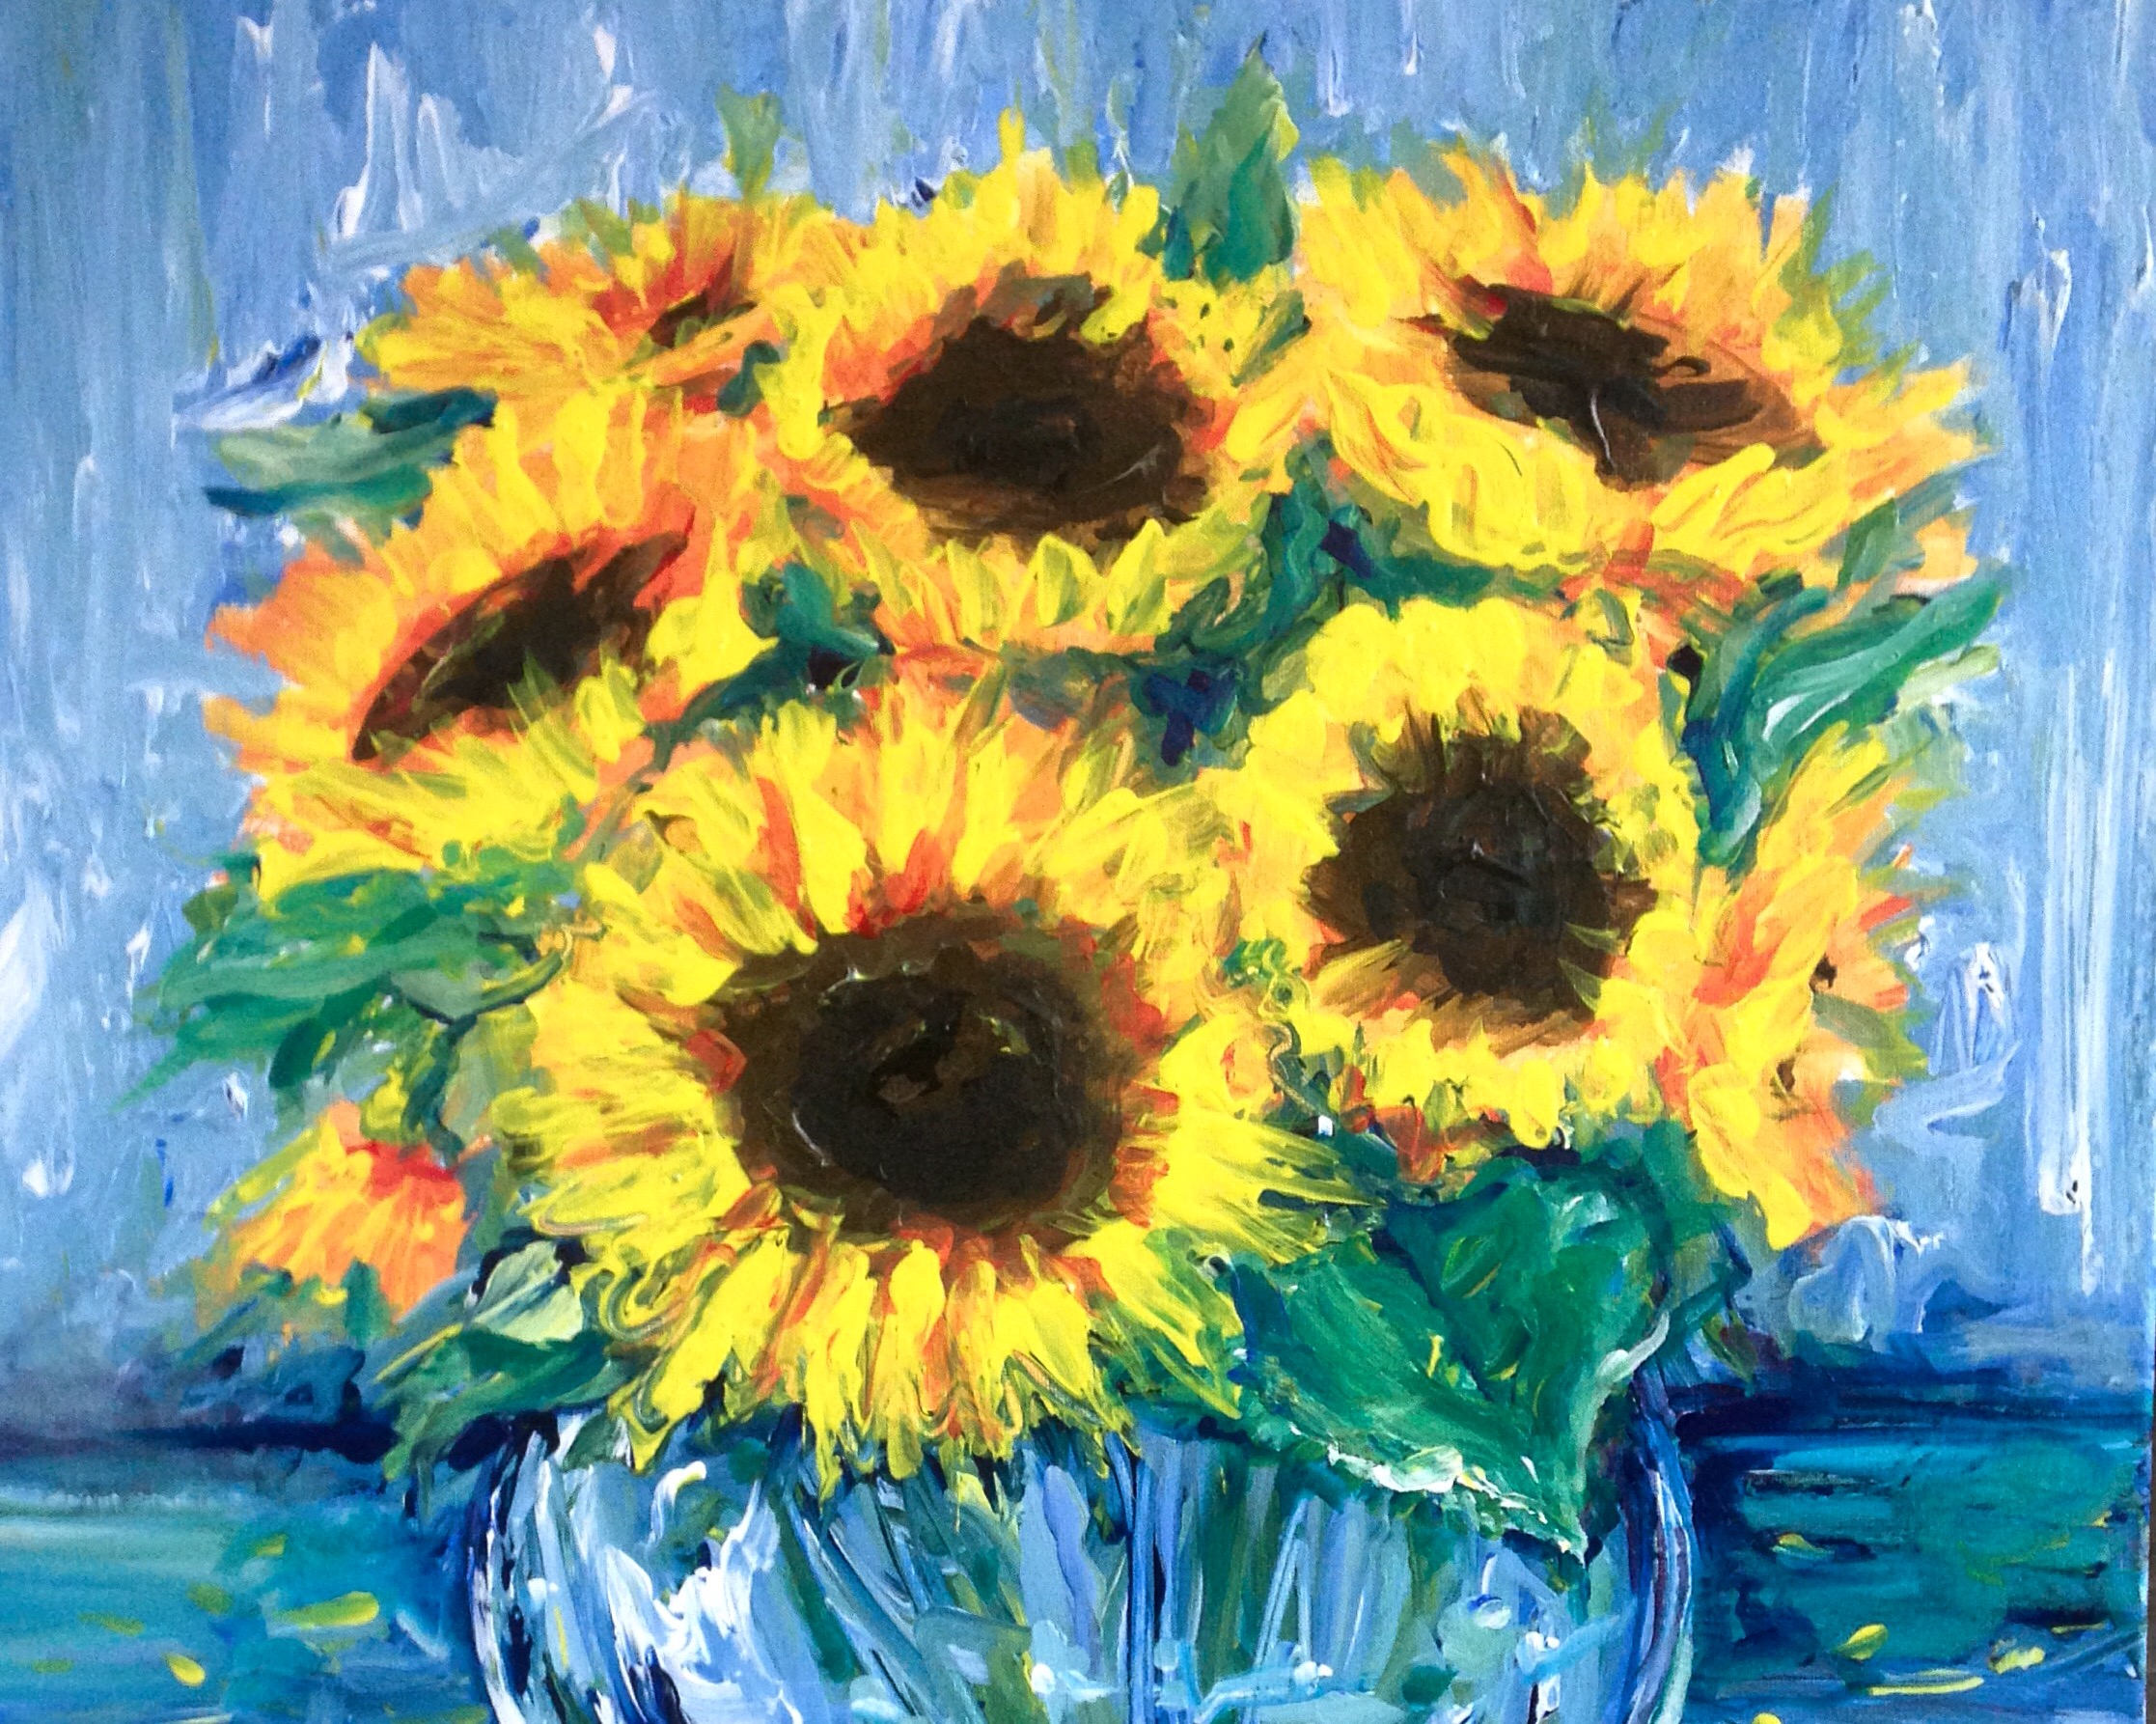 A Blue Room Sunflowers paint nite project by Yaymaker